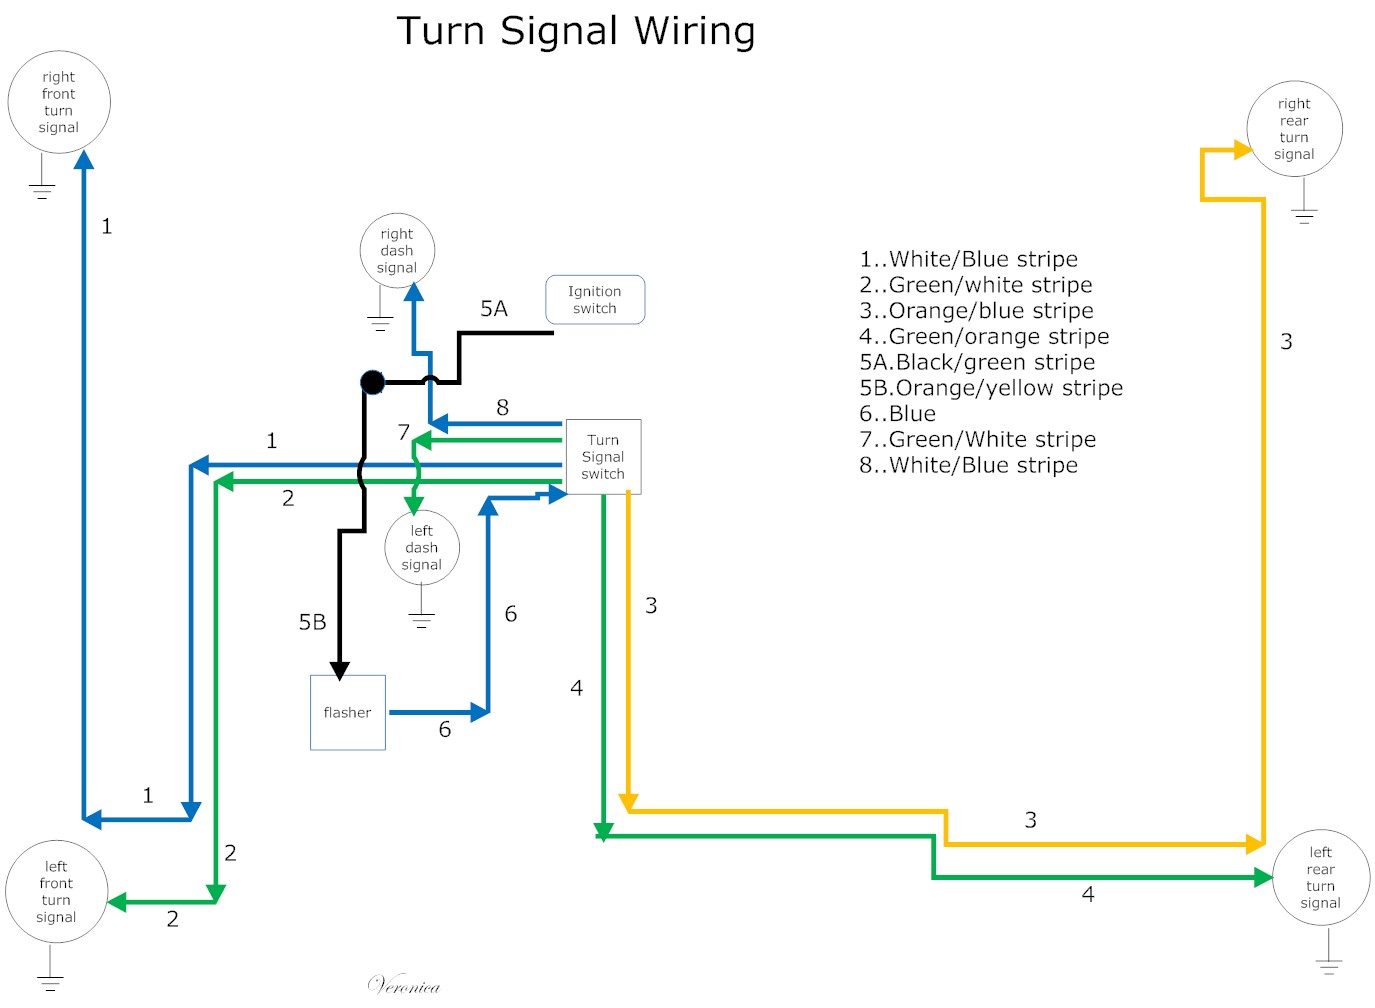 Turn+signal+Wiring the care and feeding of ponies 1965 mustang wiring diagrams 65 mustang tail light wiring diagram at n-0.co